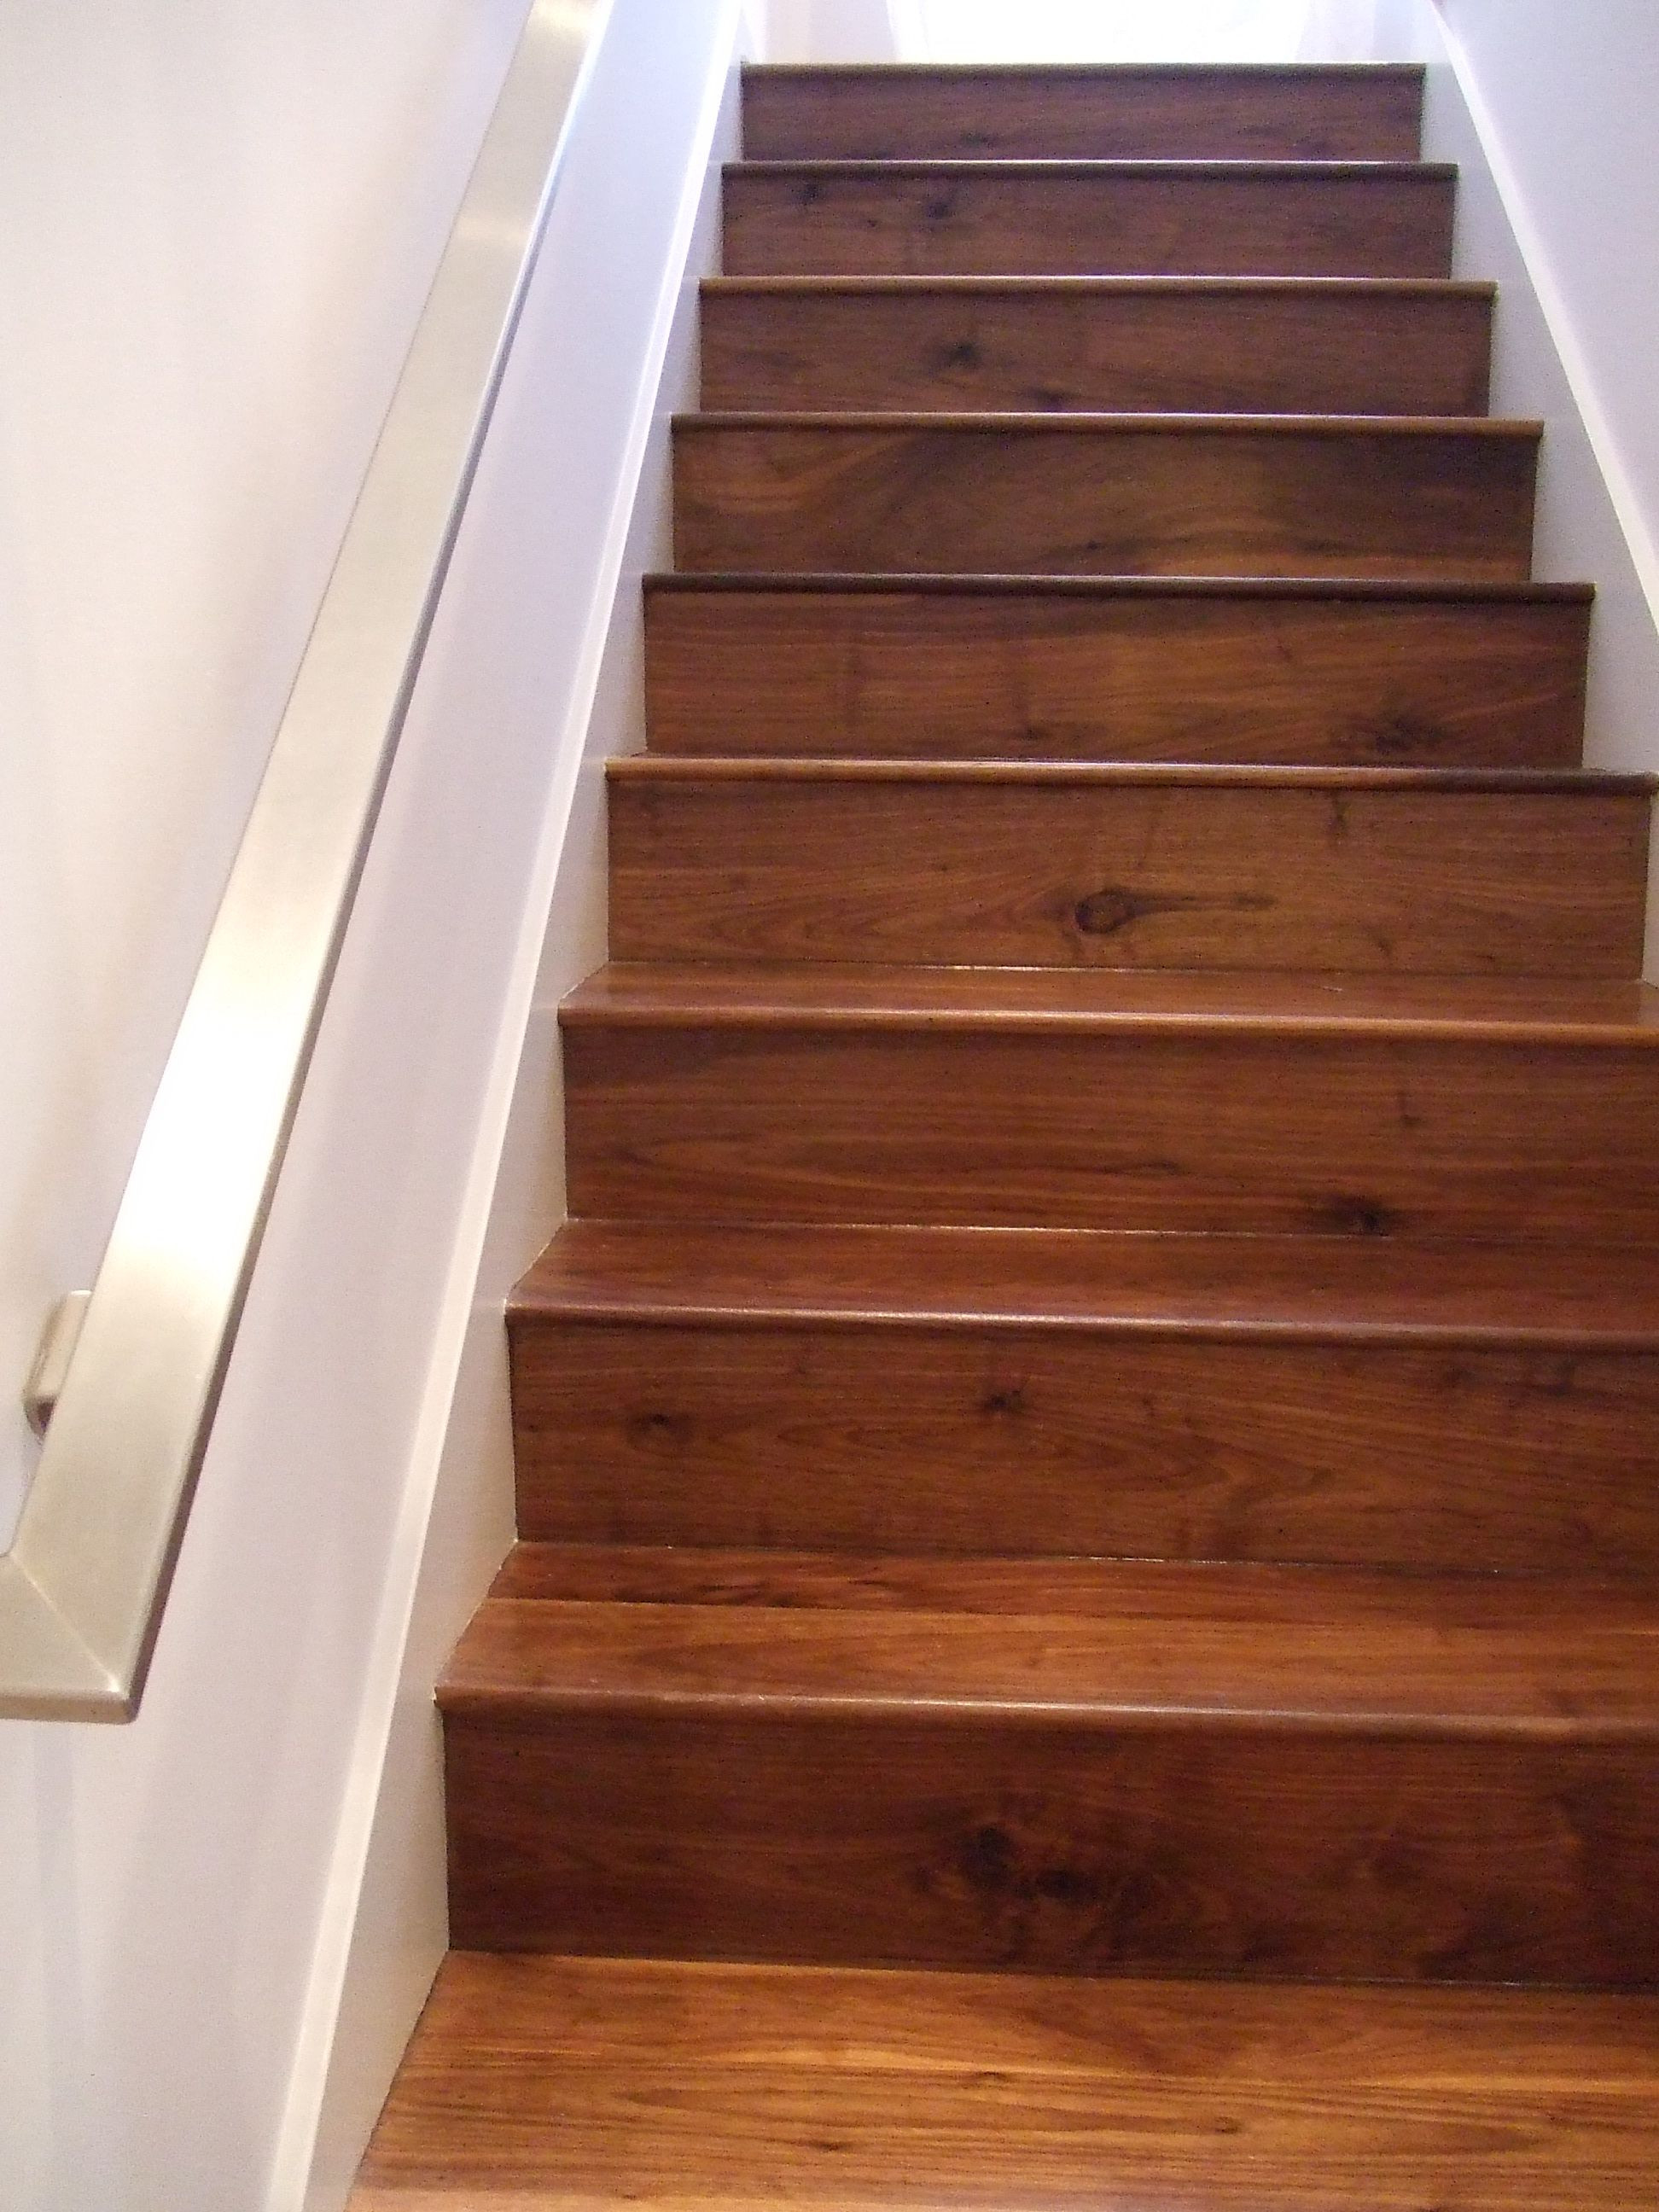 acacia walnut hardwood flooring review of black american walnut stairs my house pinterest house pertaining to black american walnut stairs